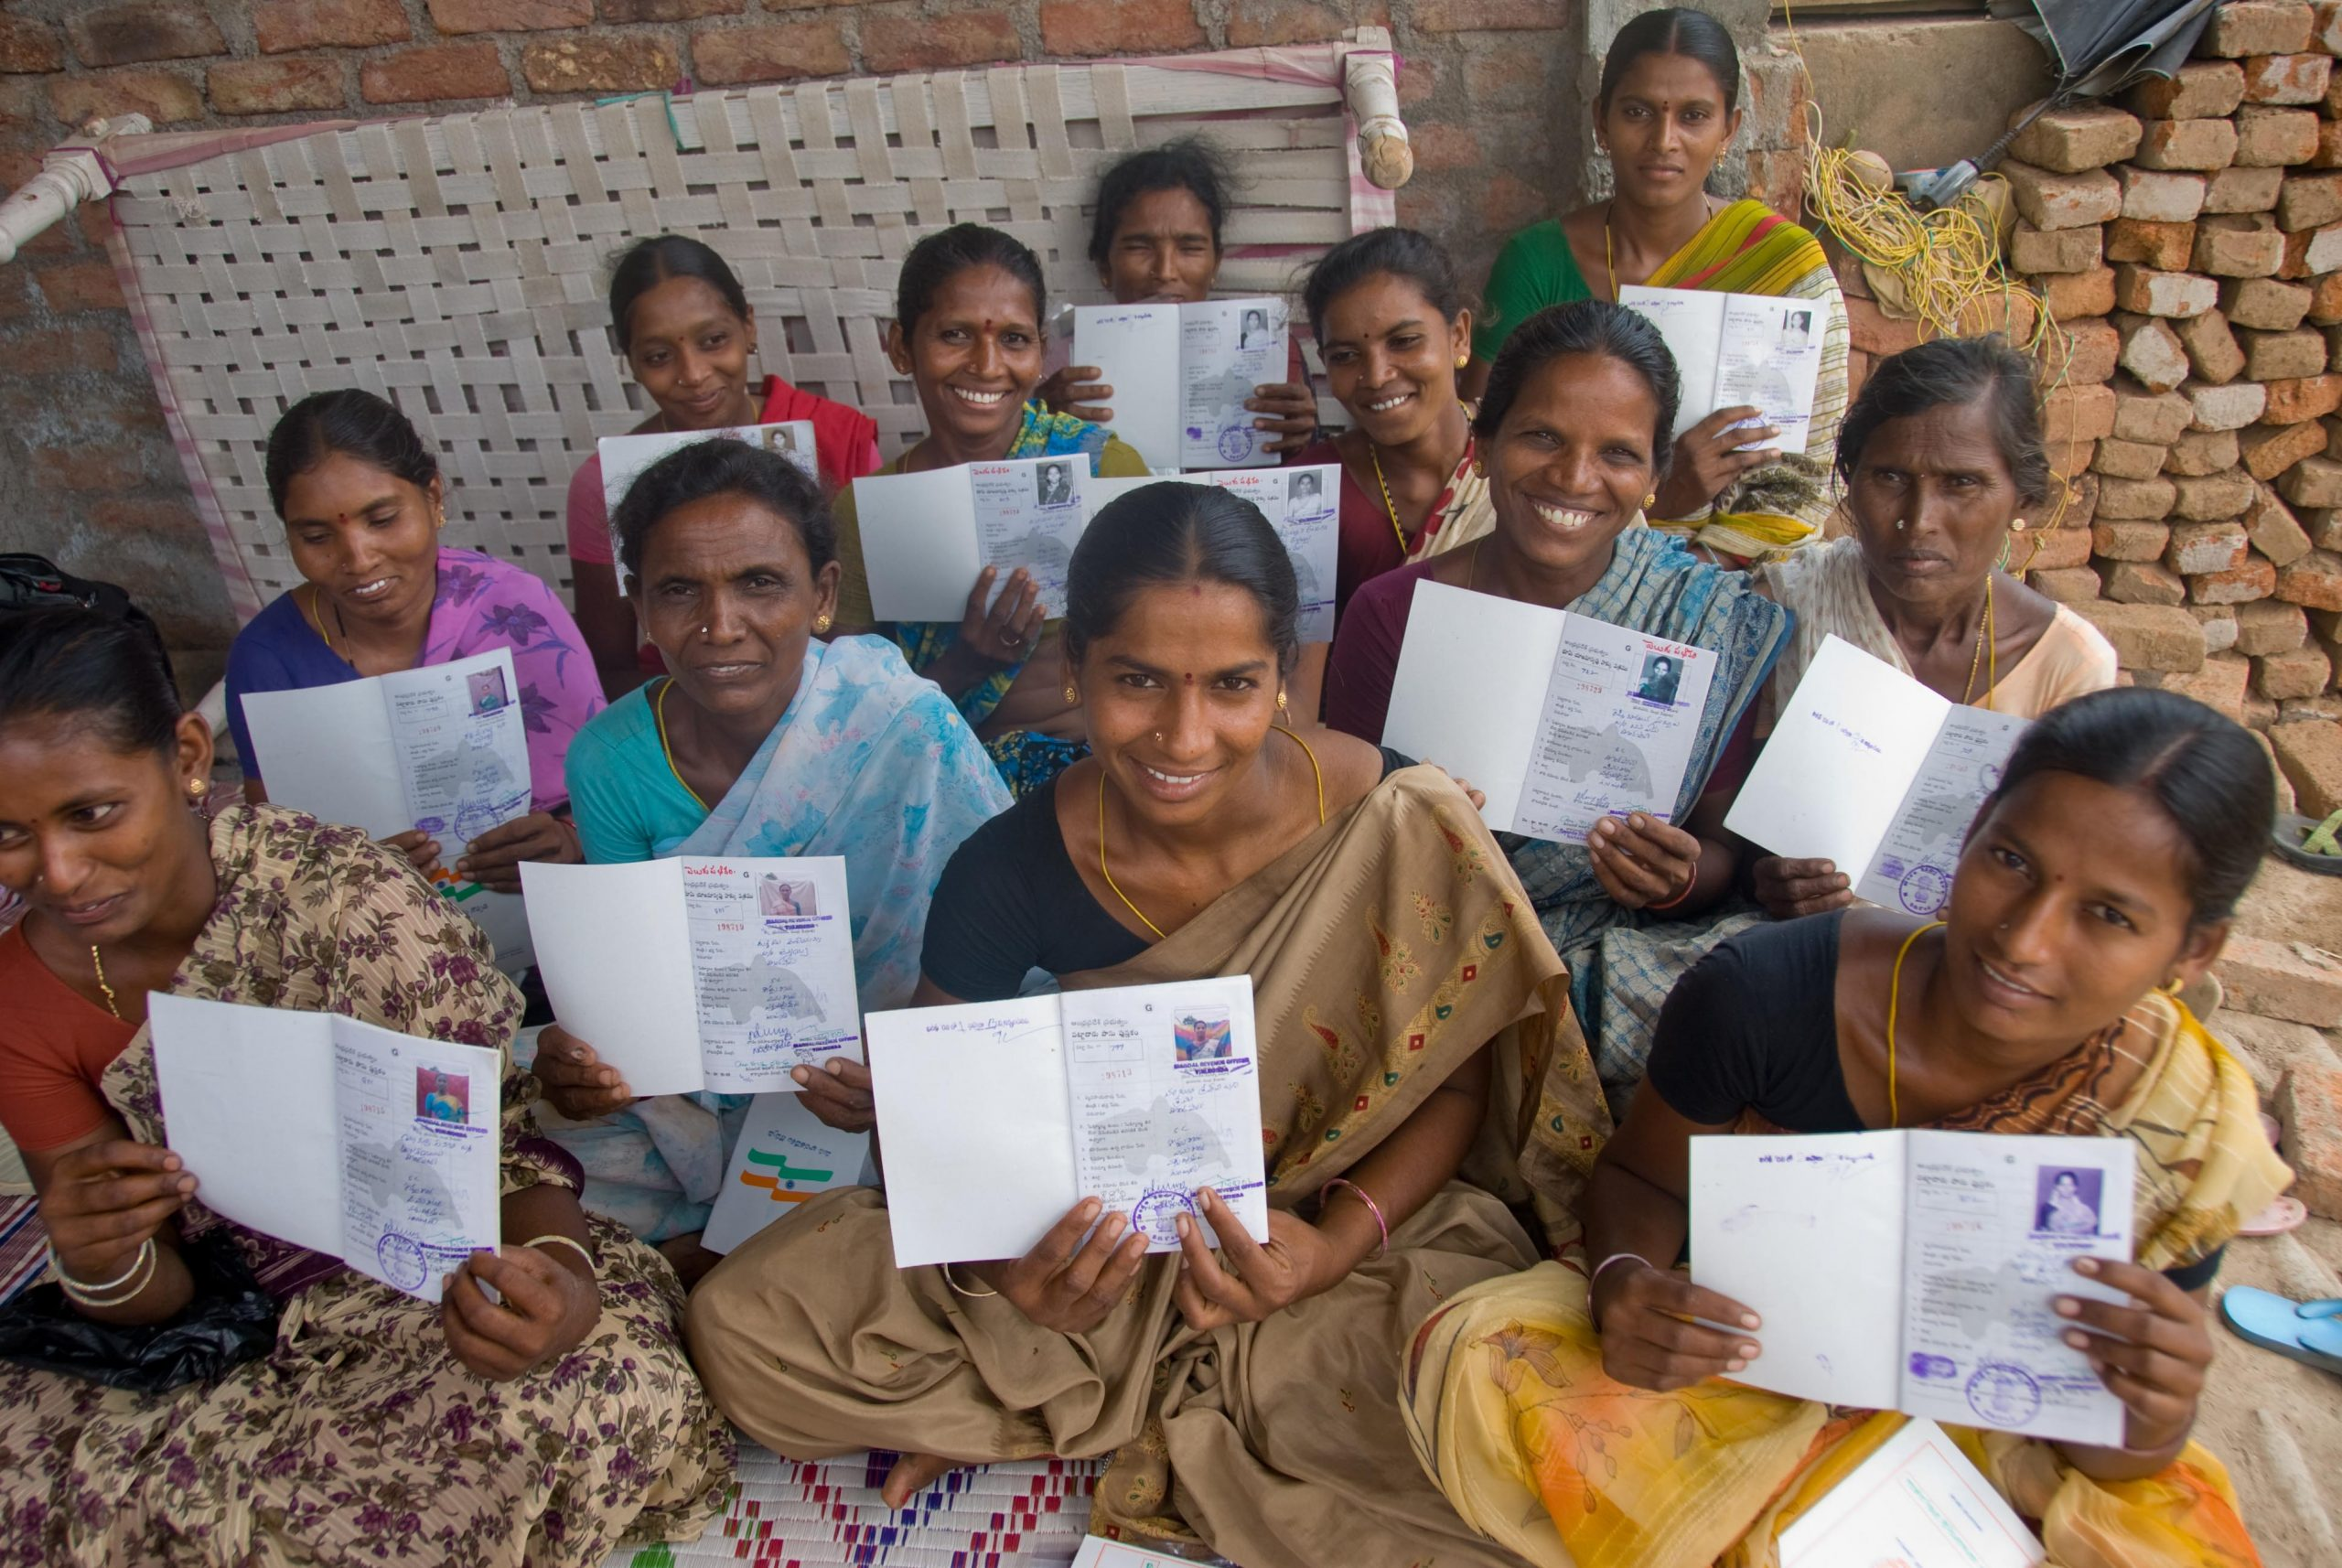 a group of women holding some kind of a personal document